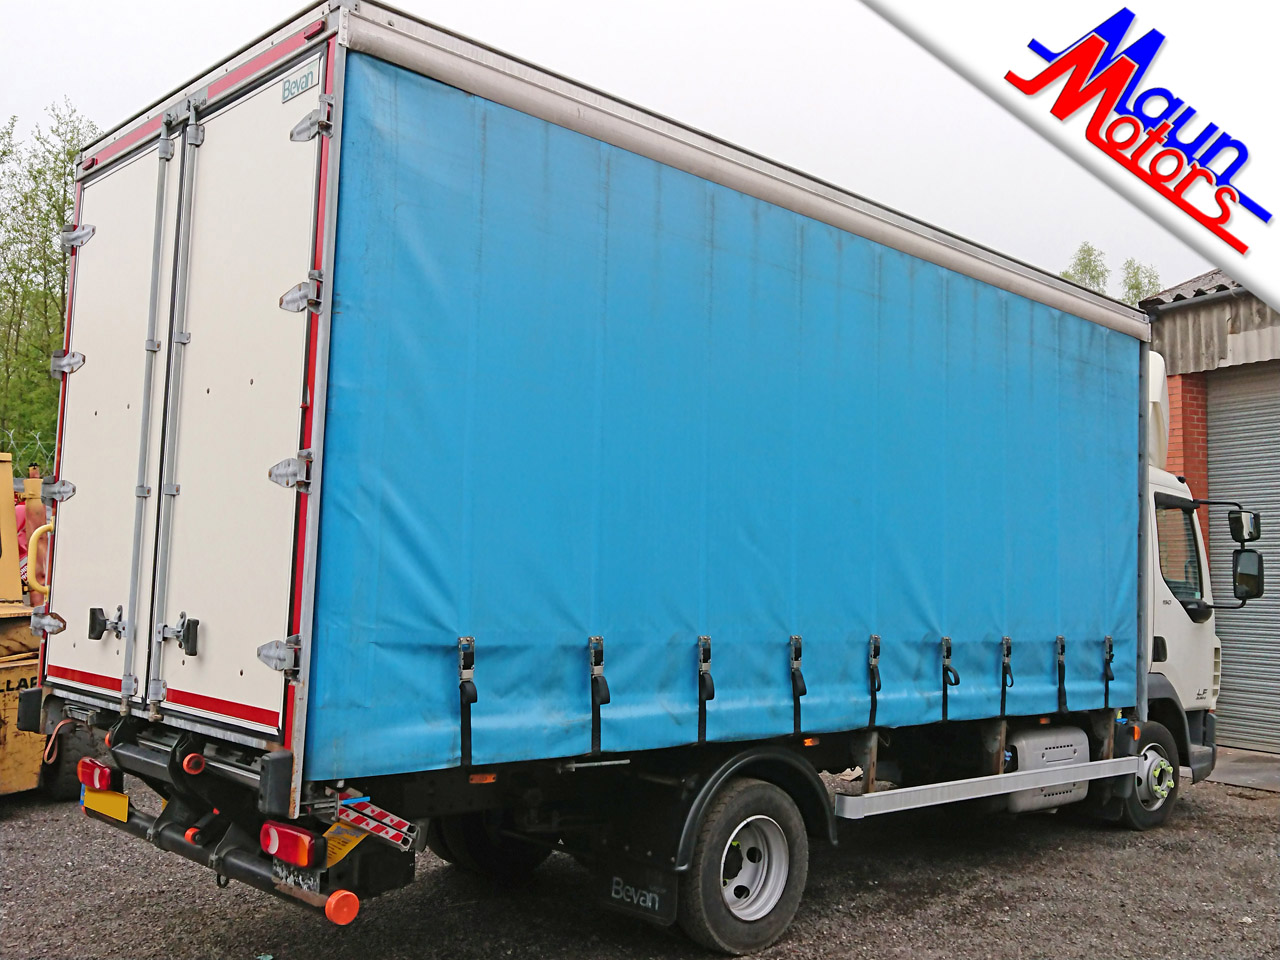 7.5t Curtain Side Truck Hire with Tail Lift